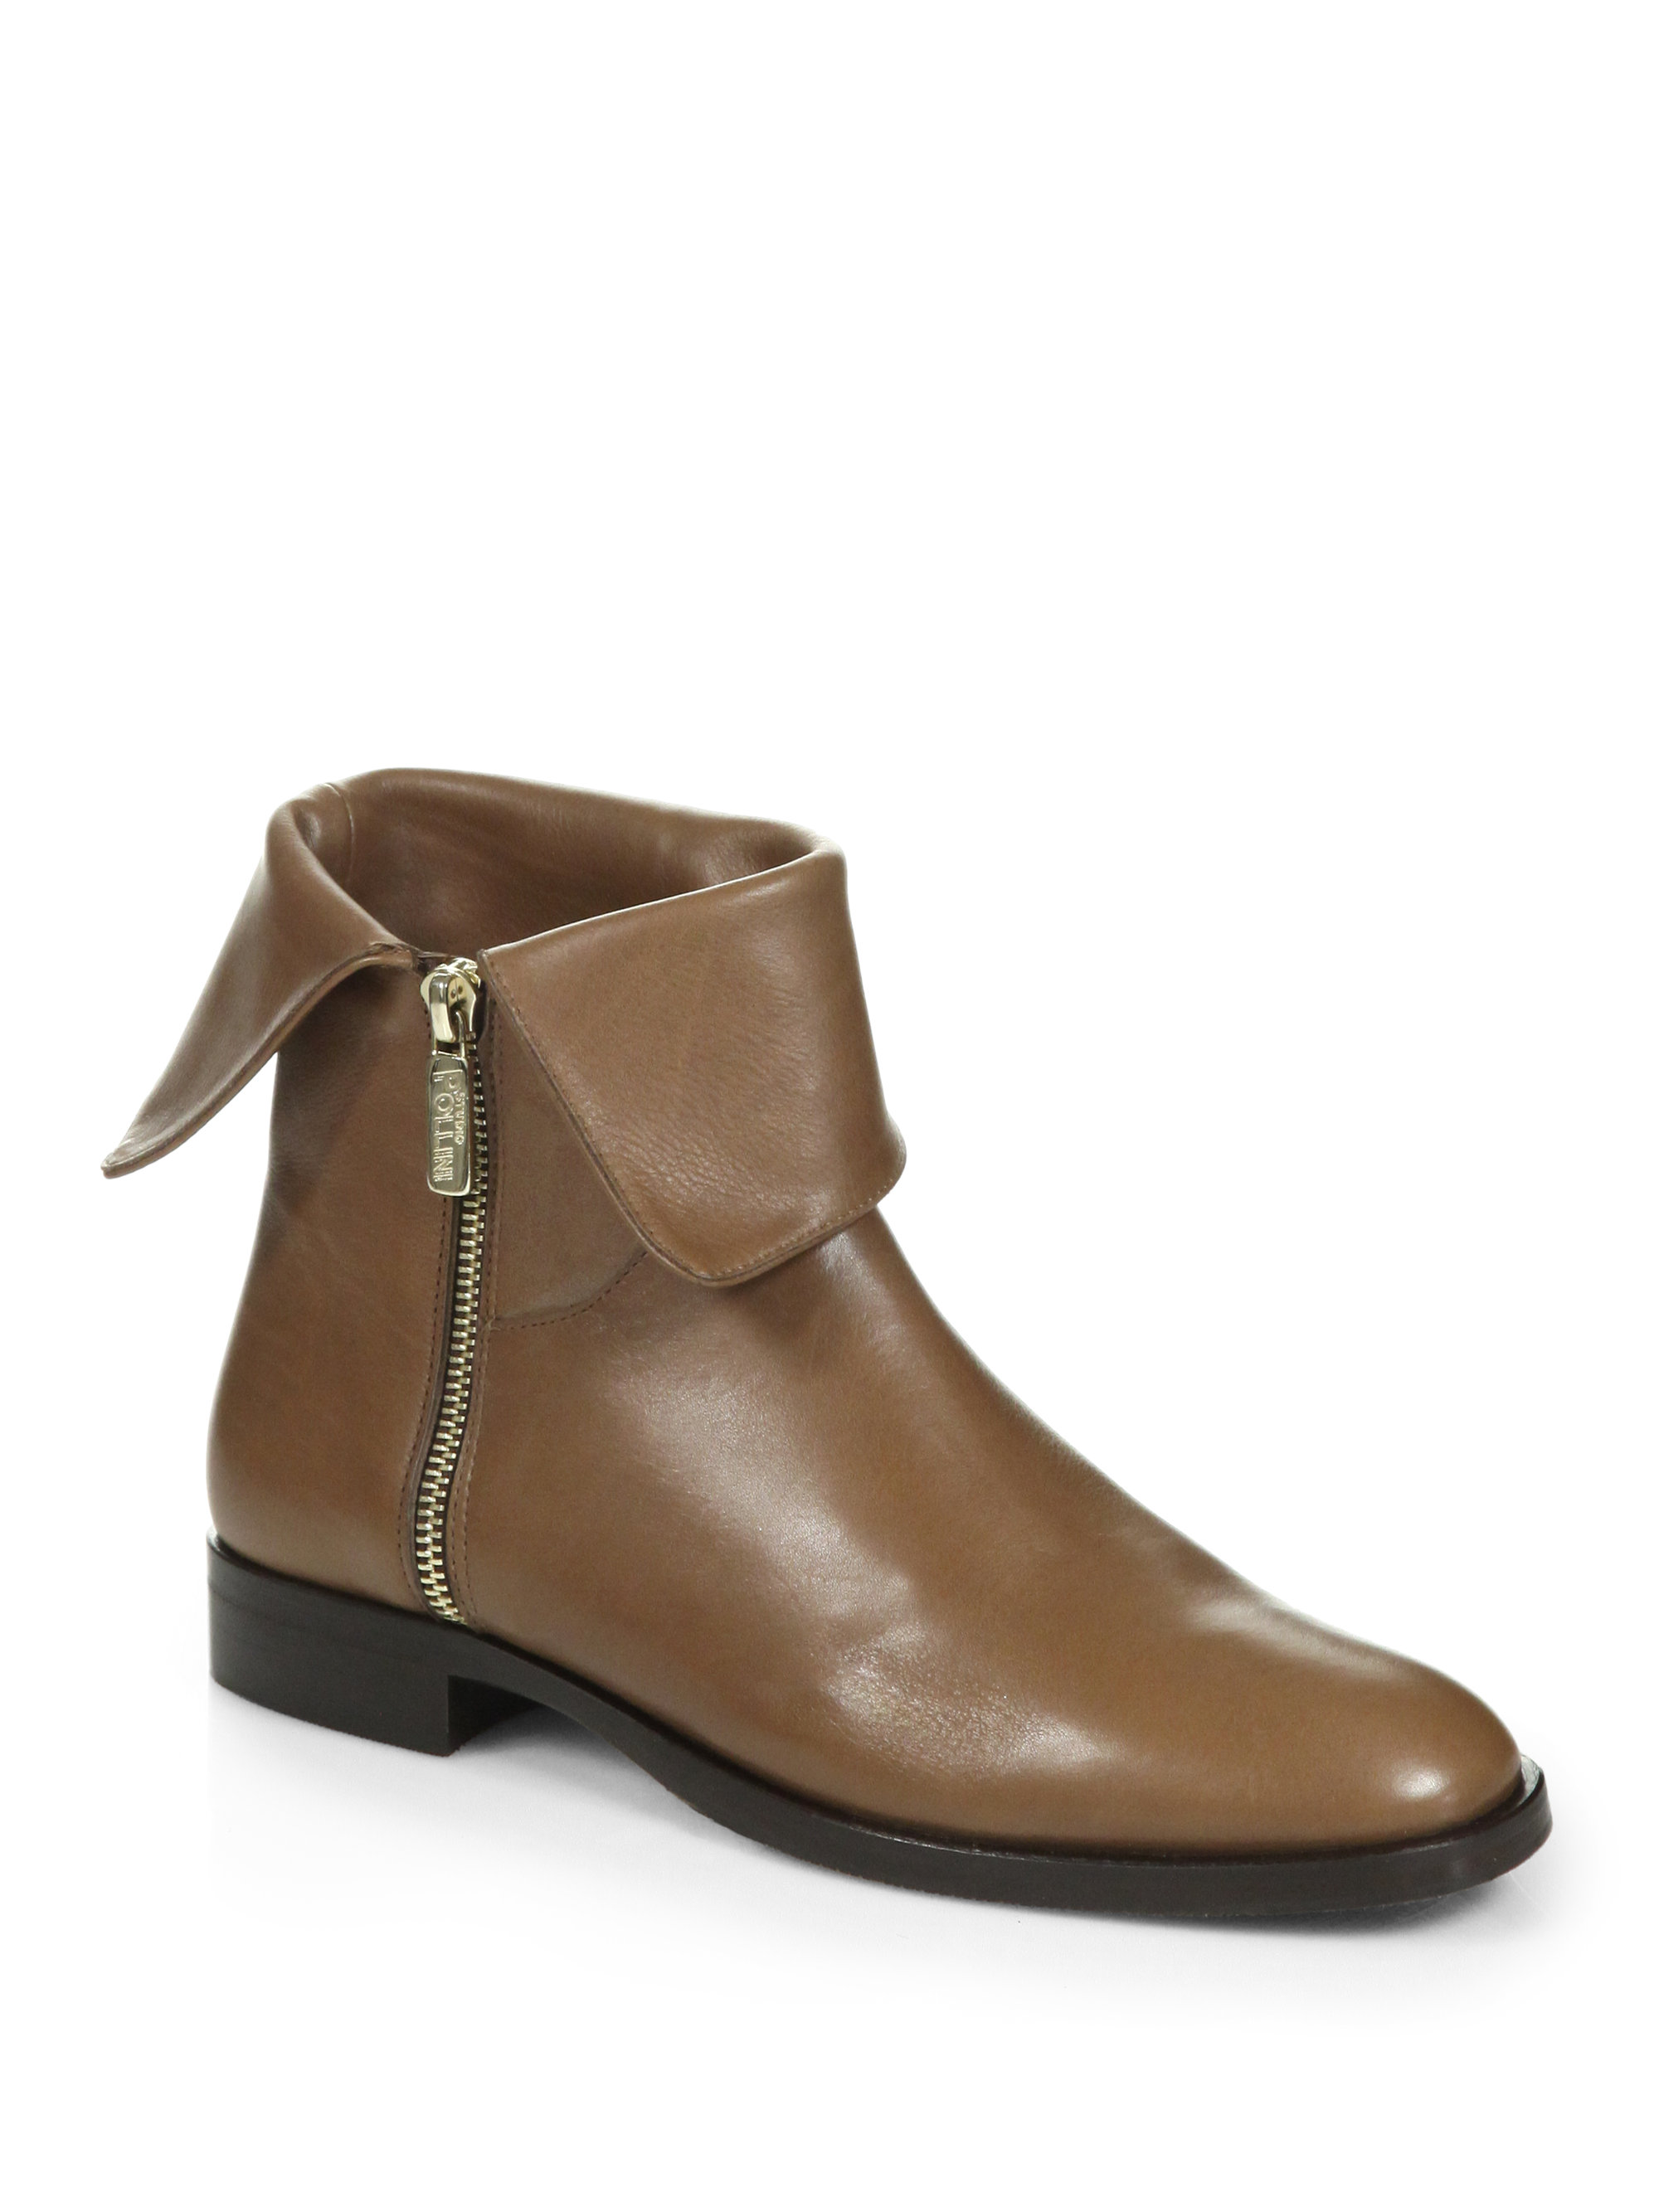 pollini foldover leather ankle boots in brown light brown